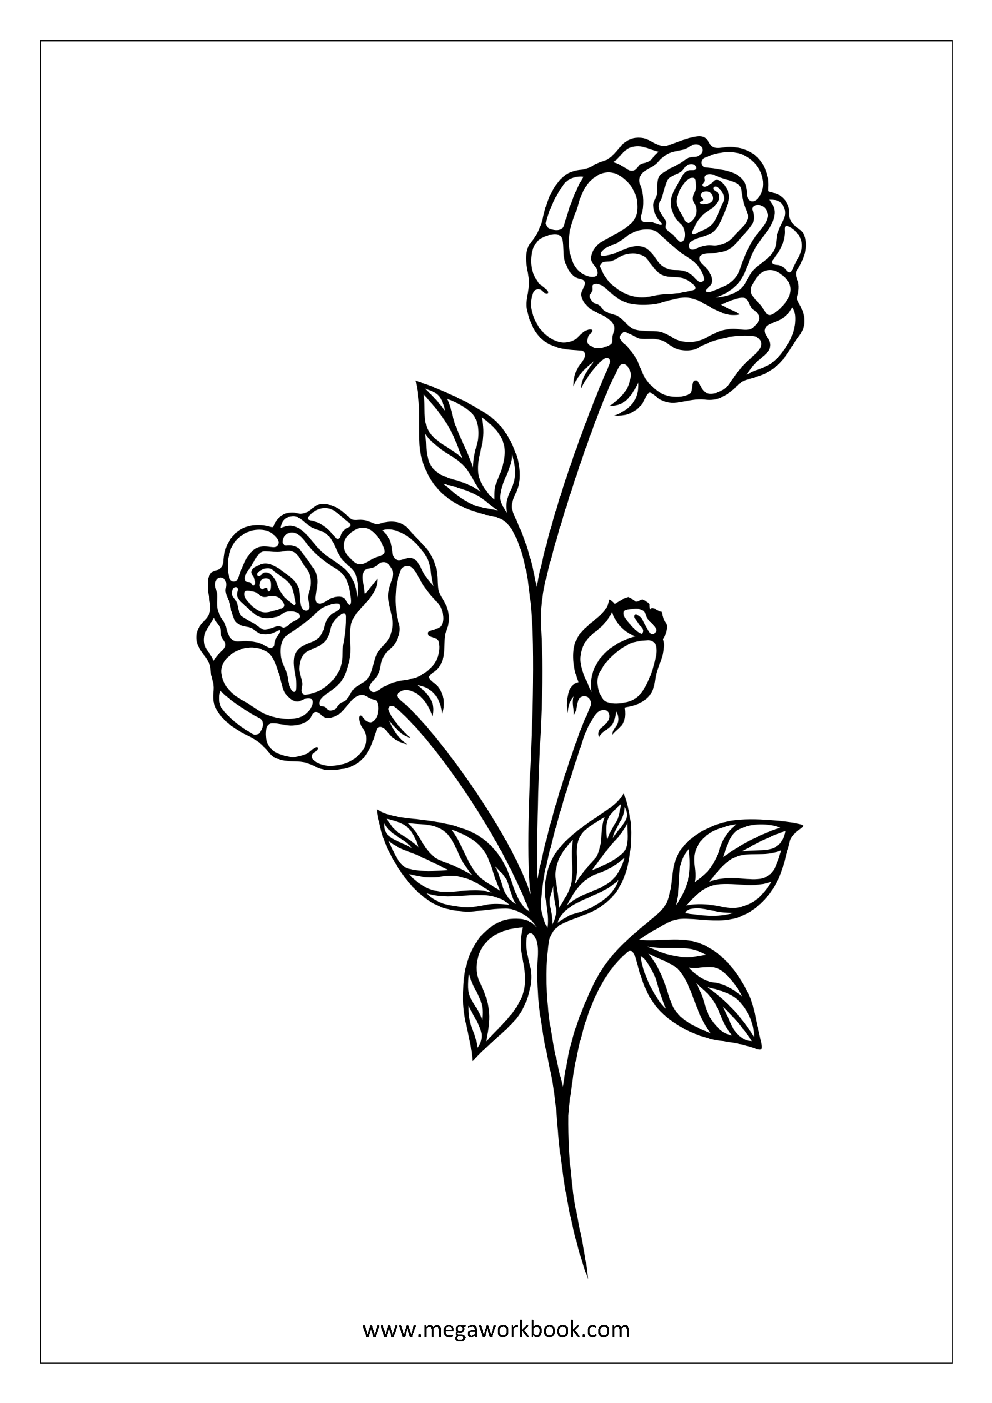 - Flower Coloring Pages - Plant & Tree Coloring Pages - Leaf